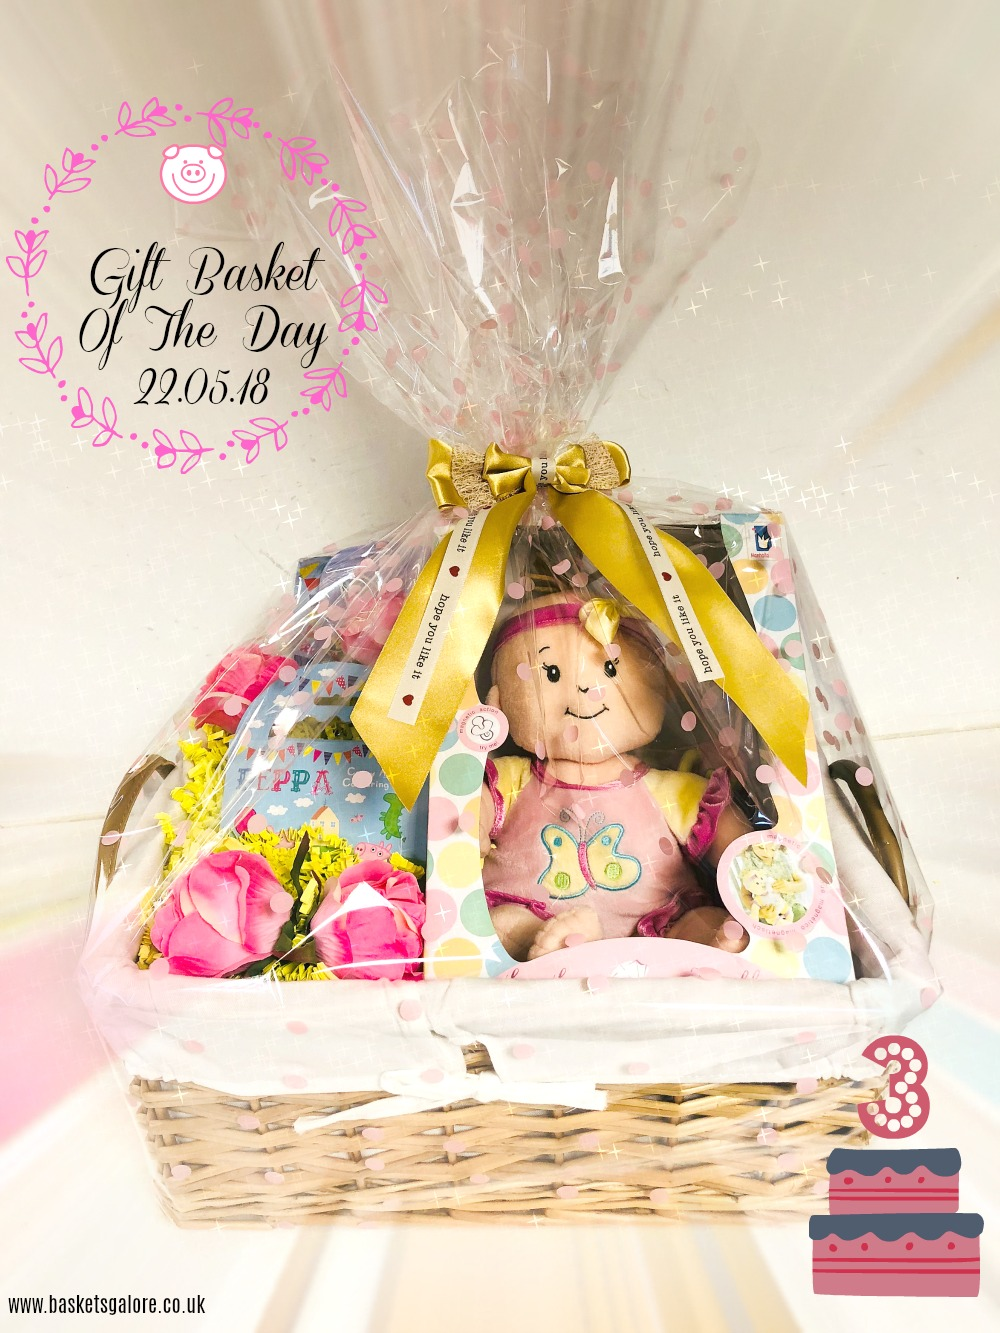 Baskets Galore's Customer Gifts – Gift Basket of the Day 22.05.18